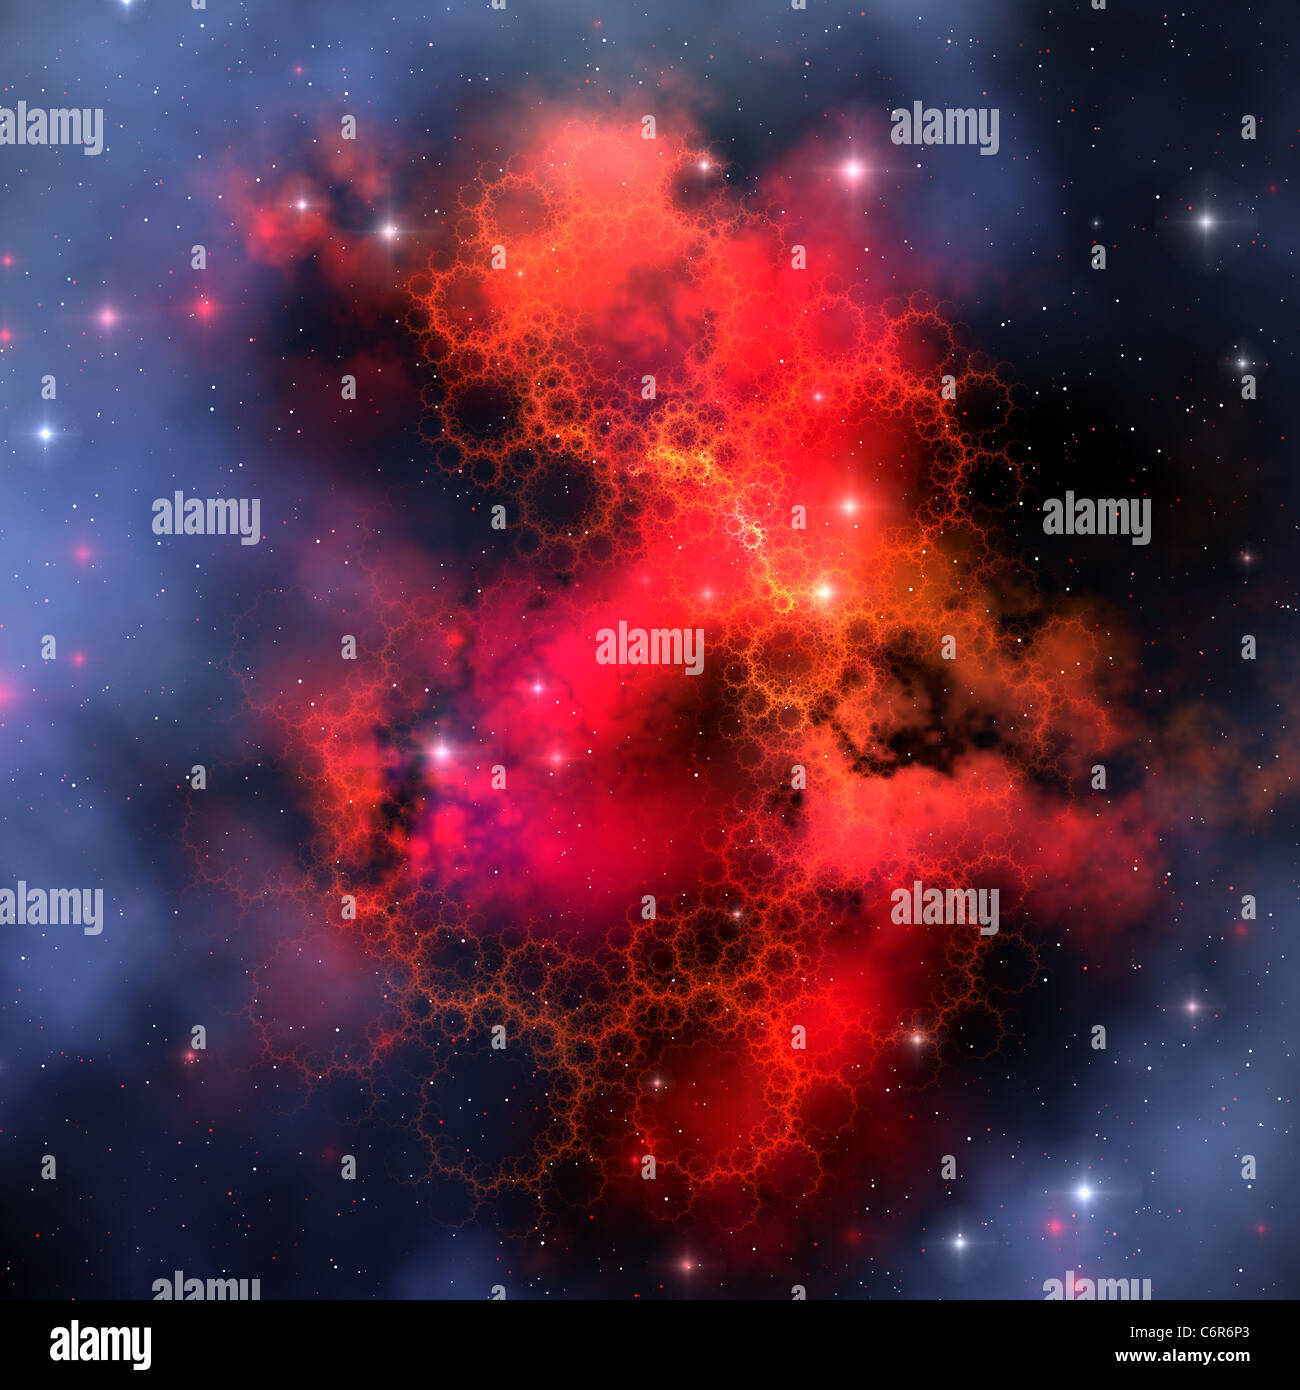 A nebula out in space emits a red signature in all its intertwining filaments. - Stock Image